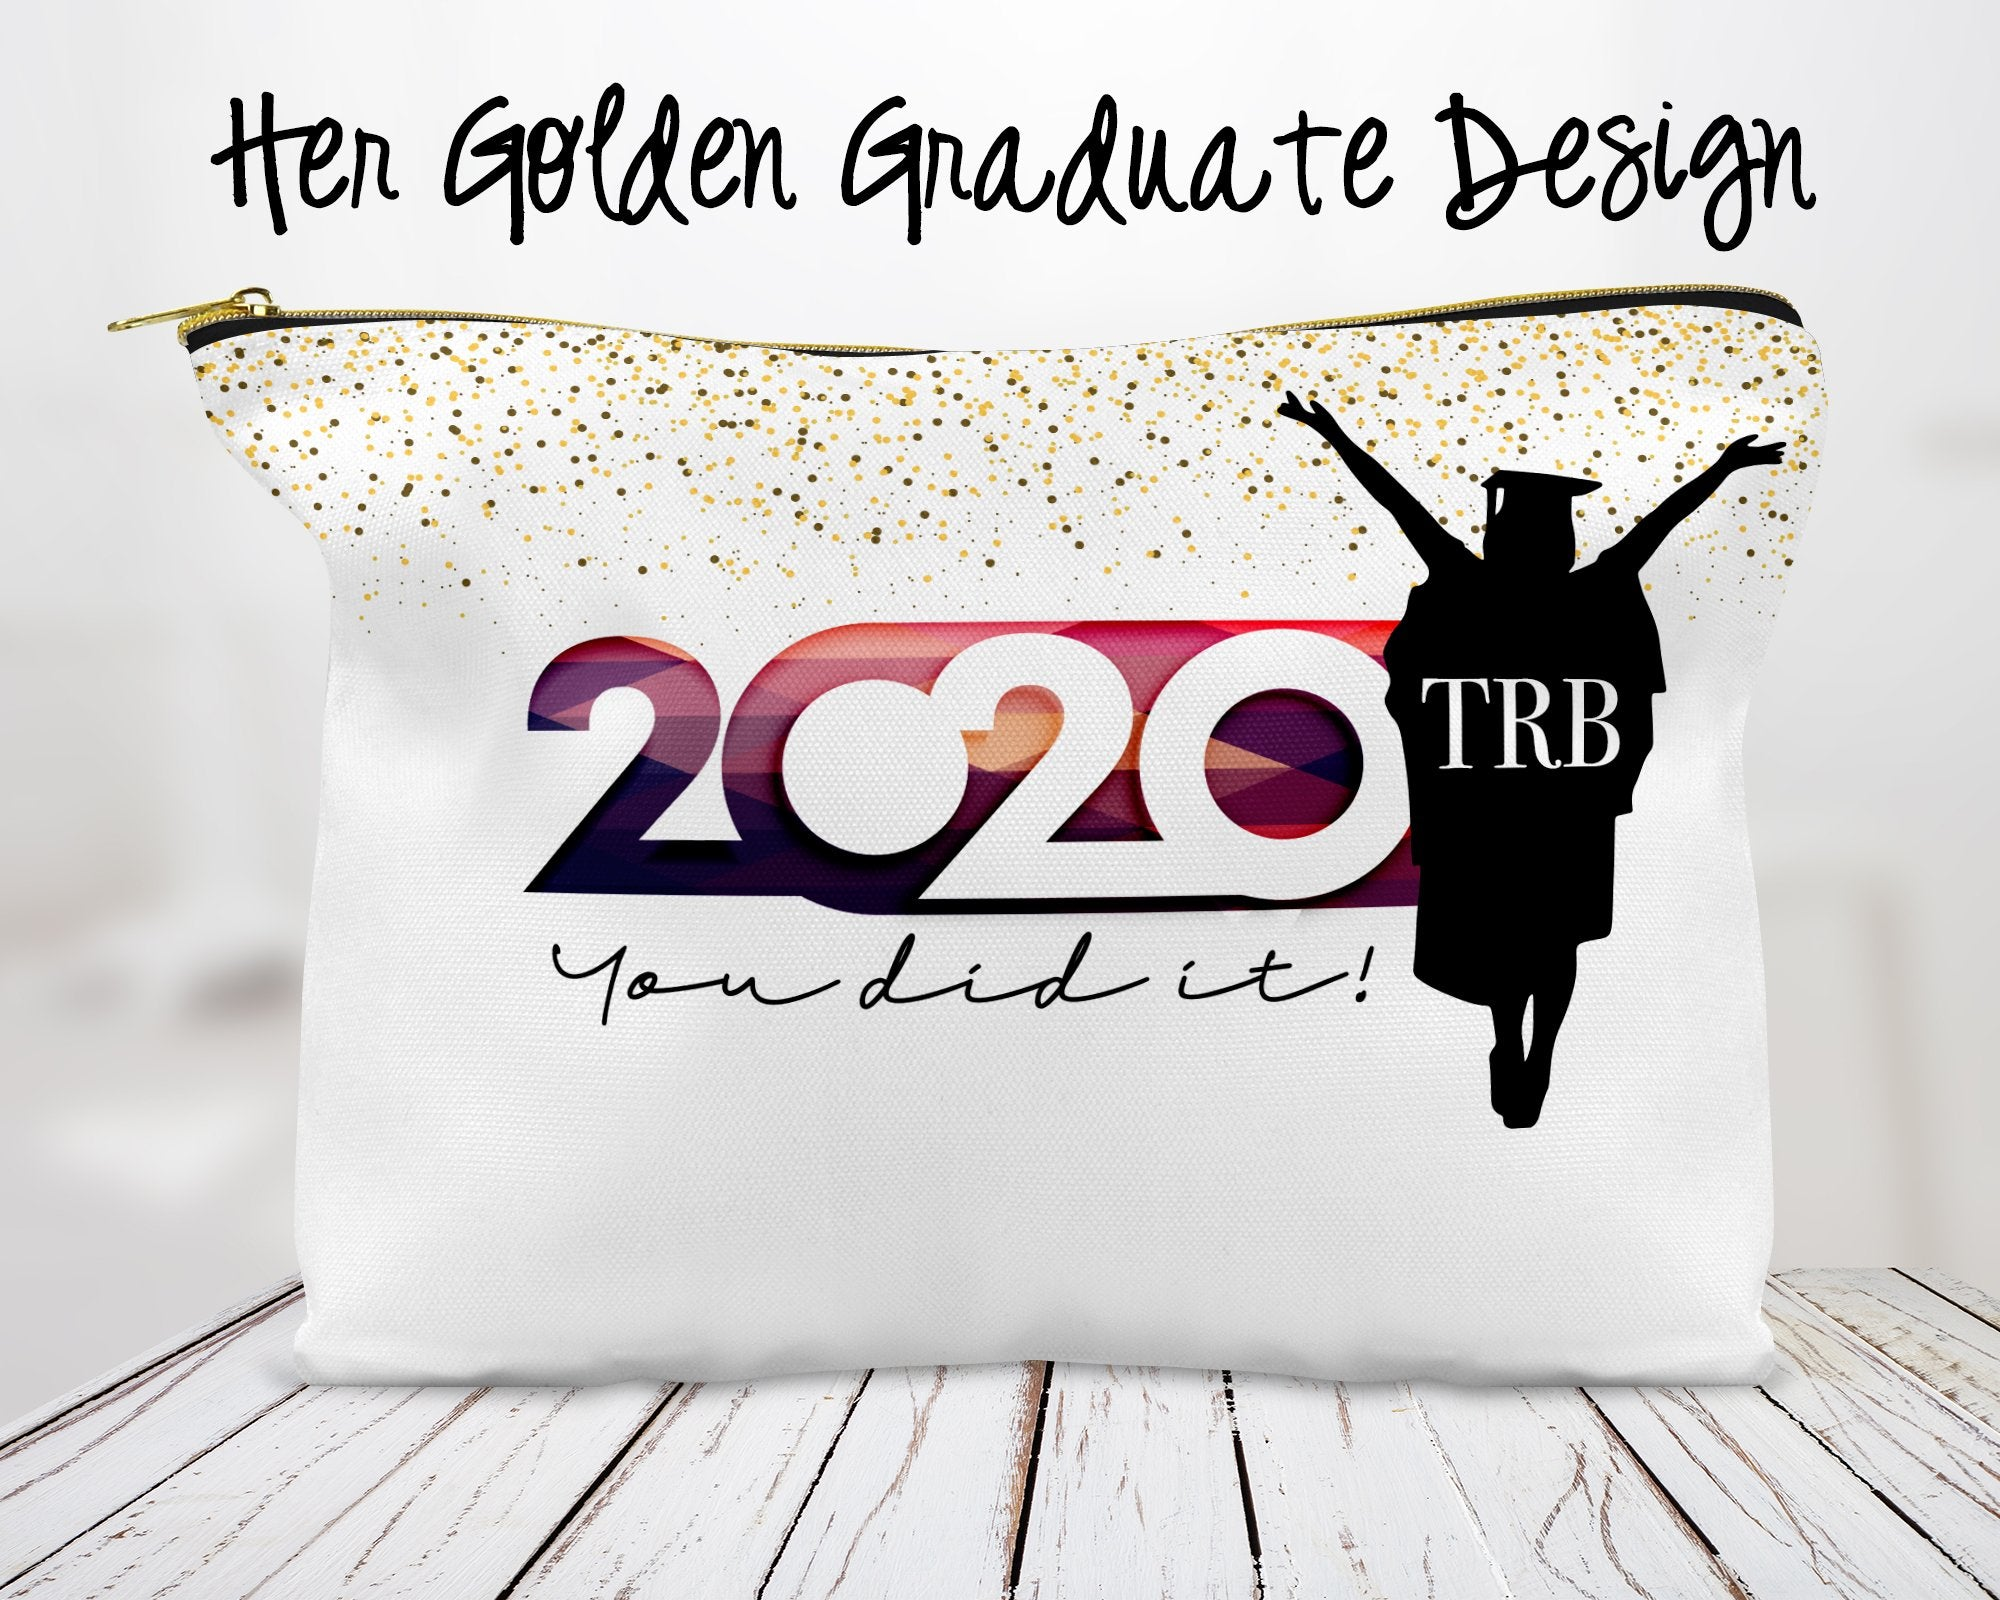 Her Golden Graduate Custom Cosmetic Bag